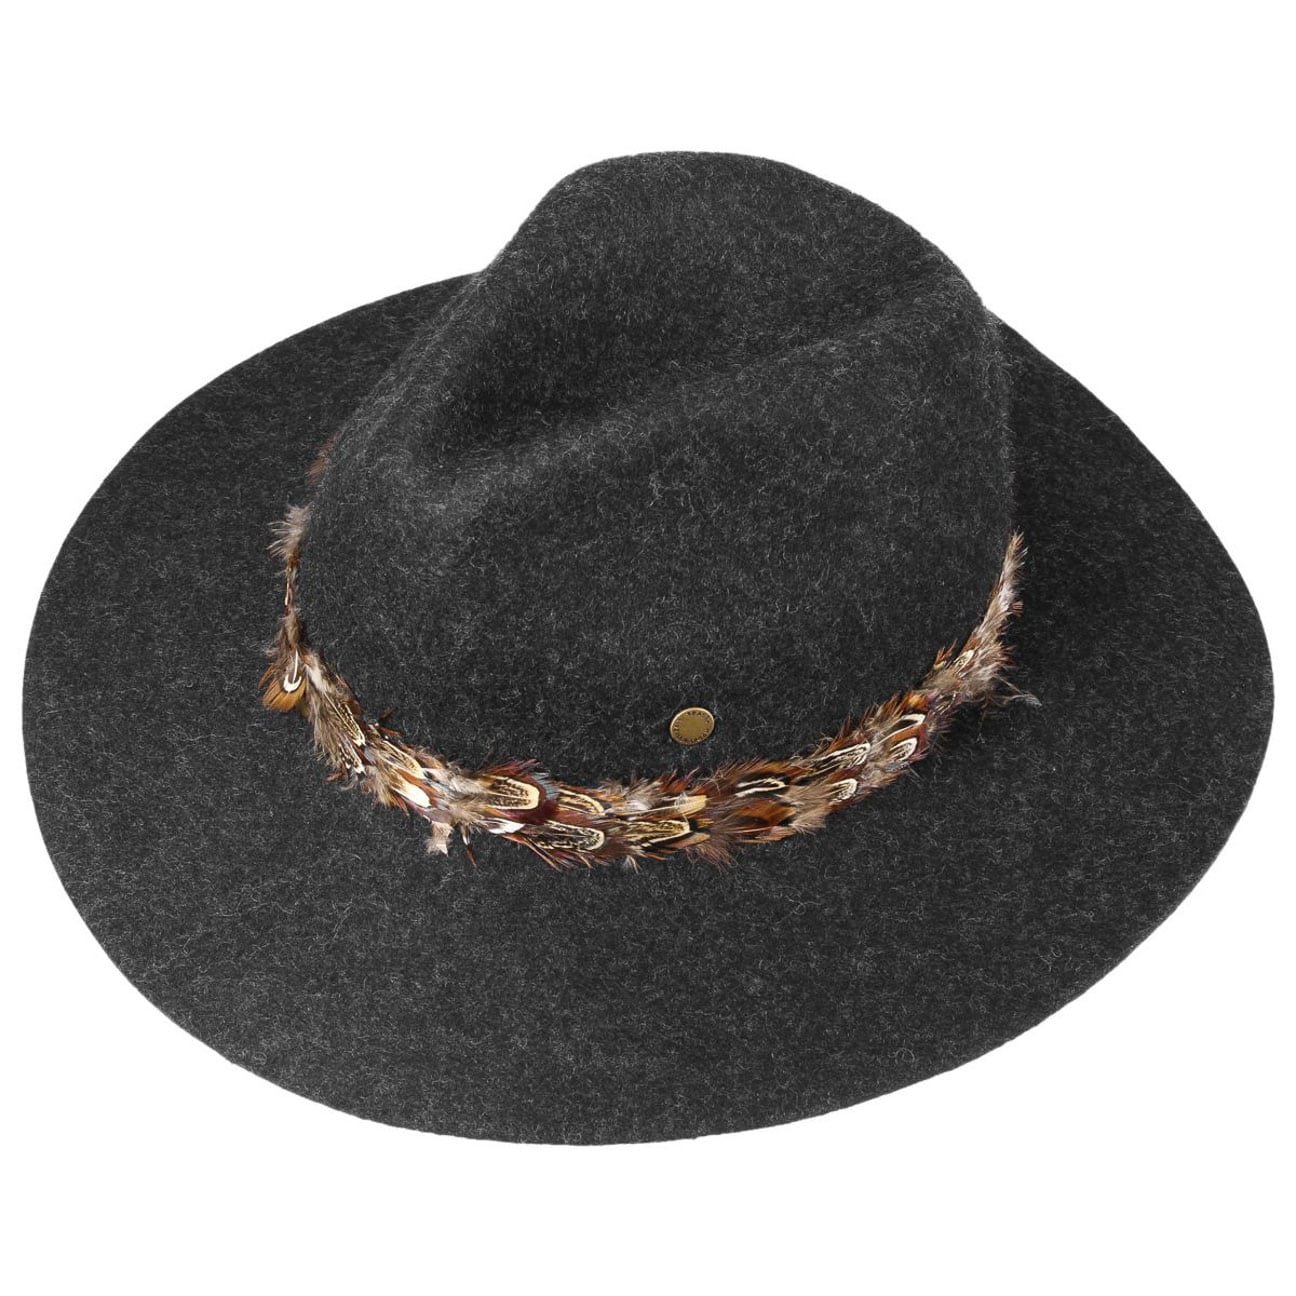 9b05da08 ... Alexia Women´s Hat by Barts - anthracite 2 ...